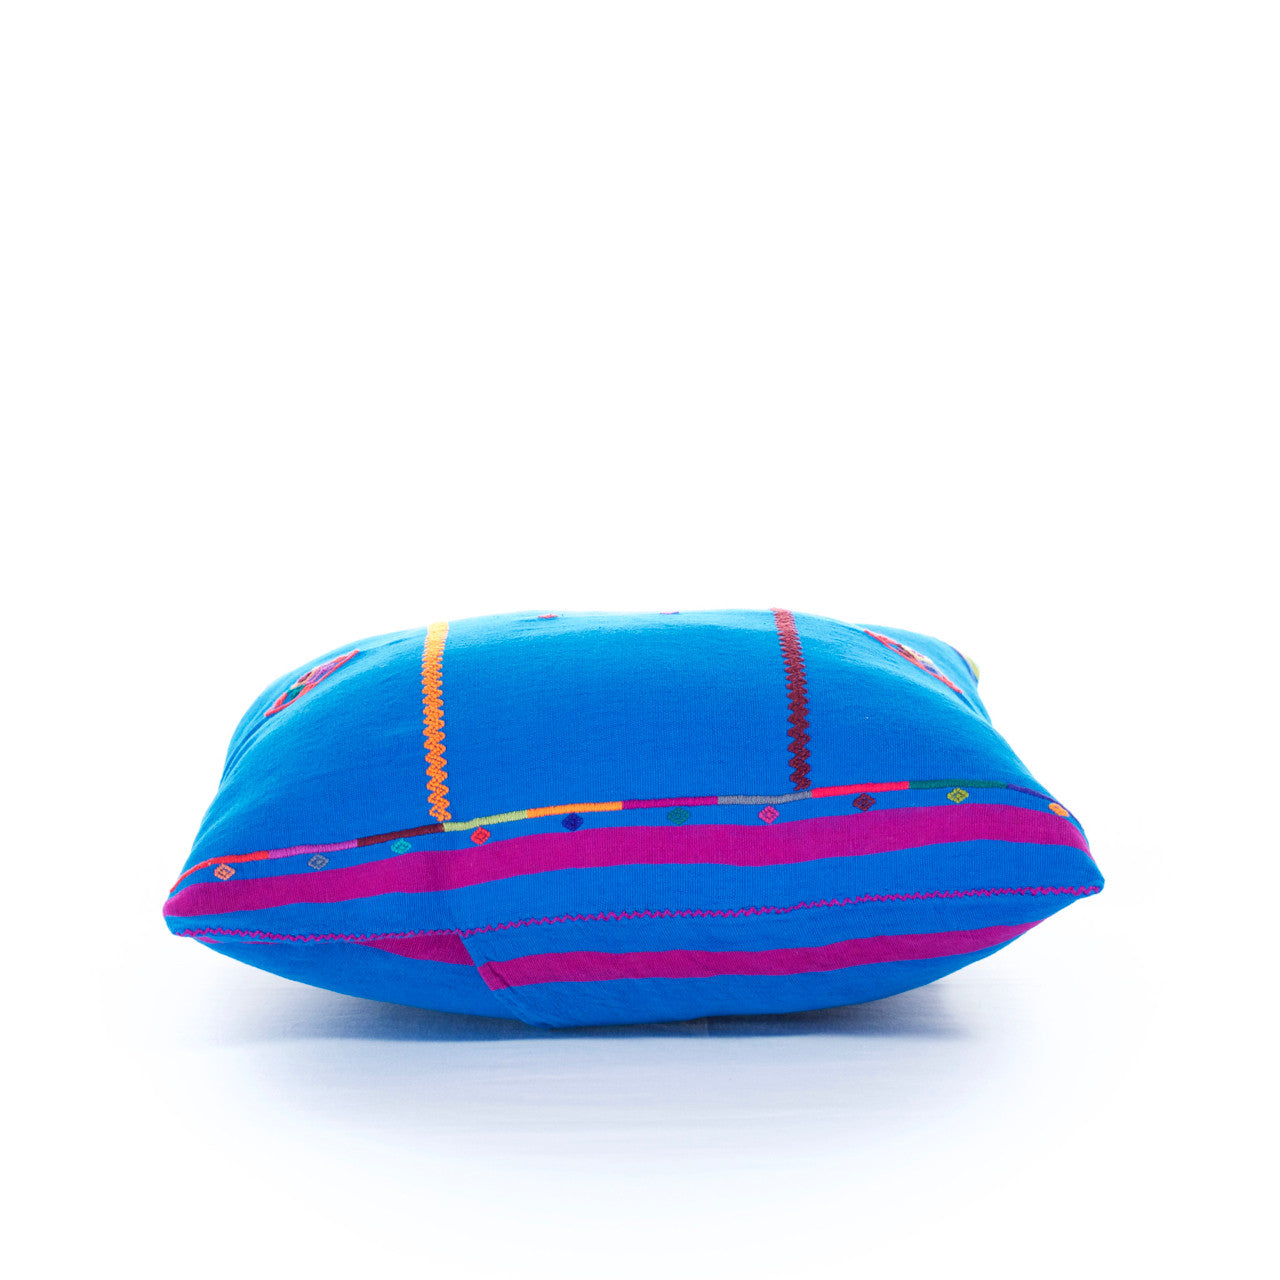 Sapo Cushion - Cielo Collective - Light Blue - 4